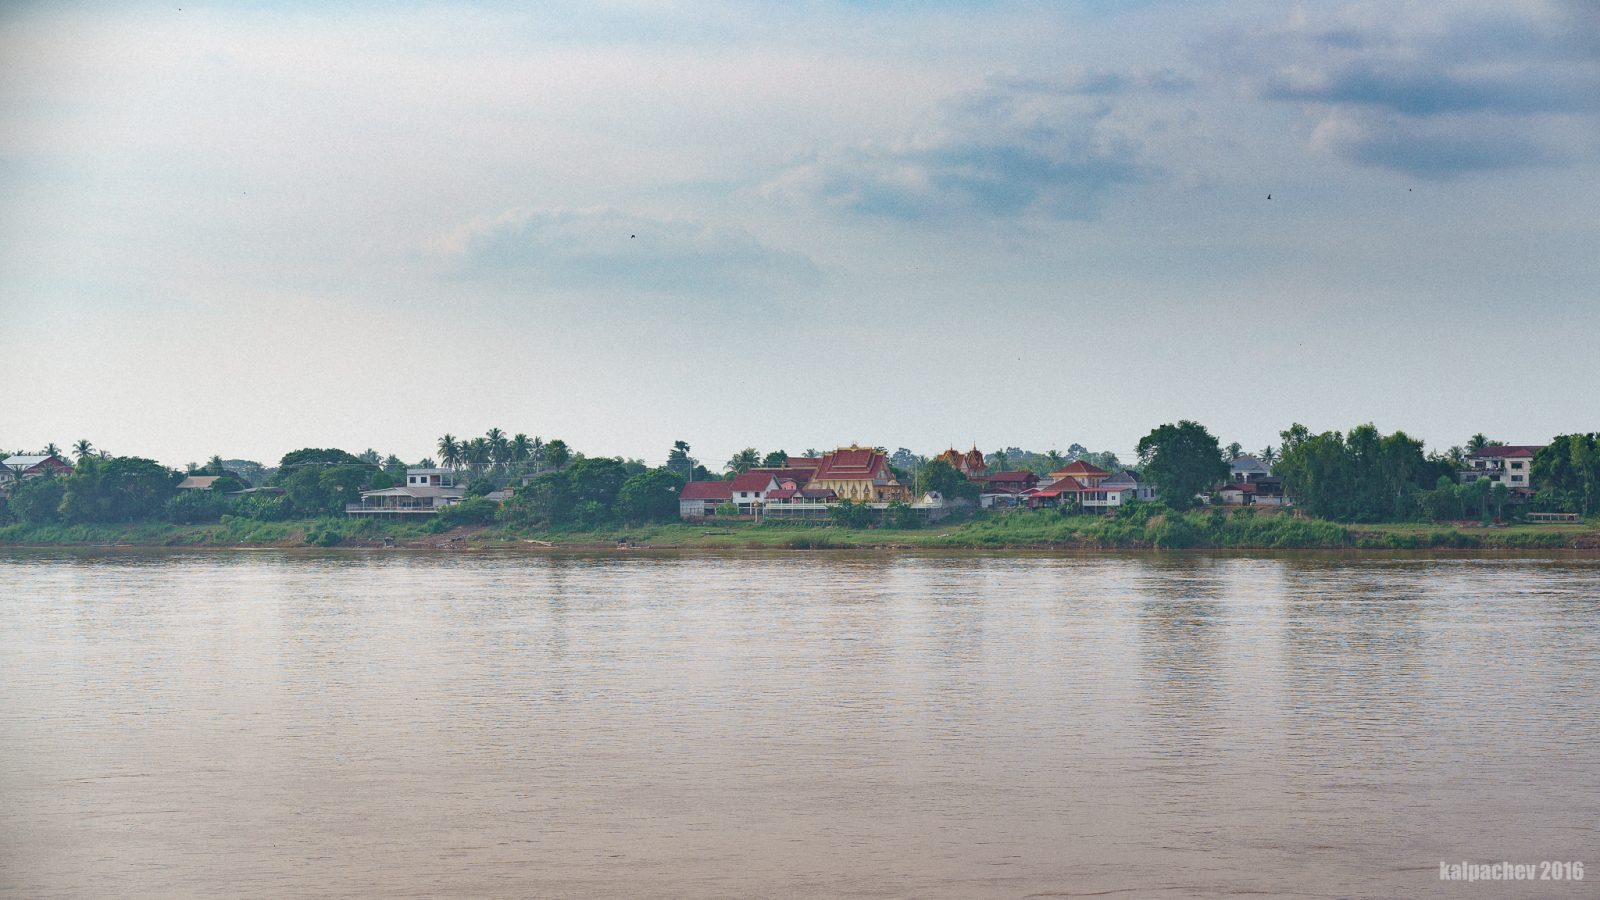 Laos across the river, October 2016